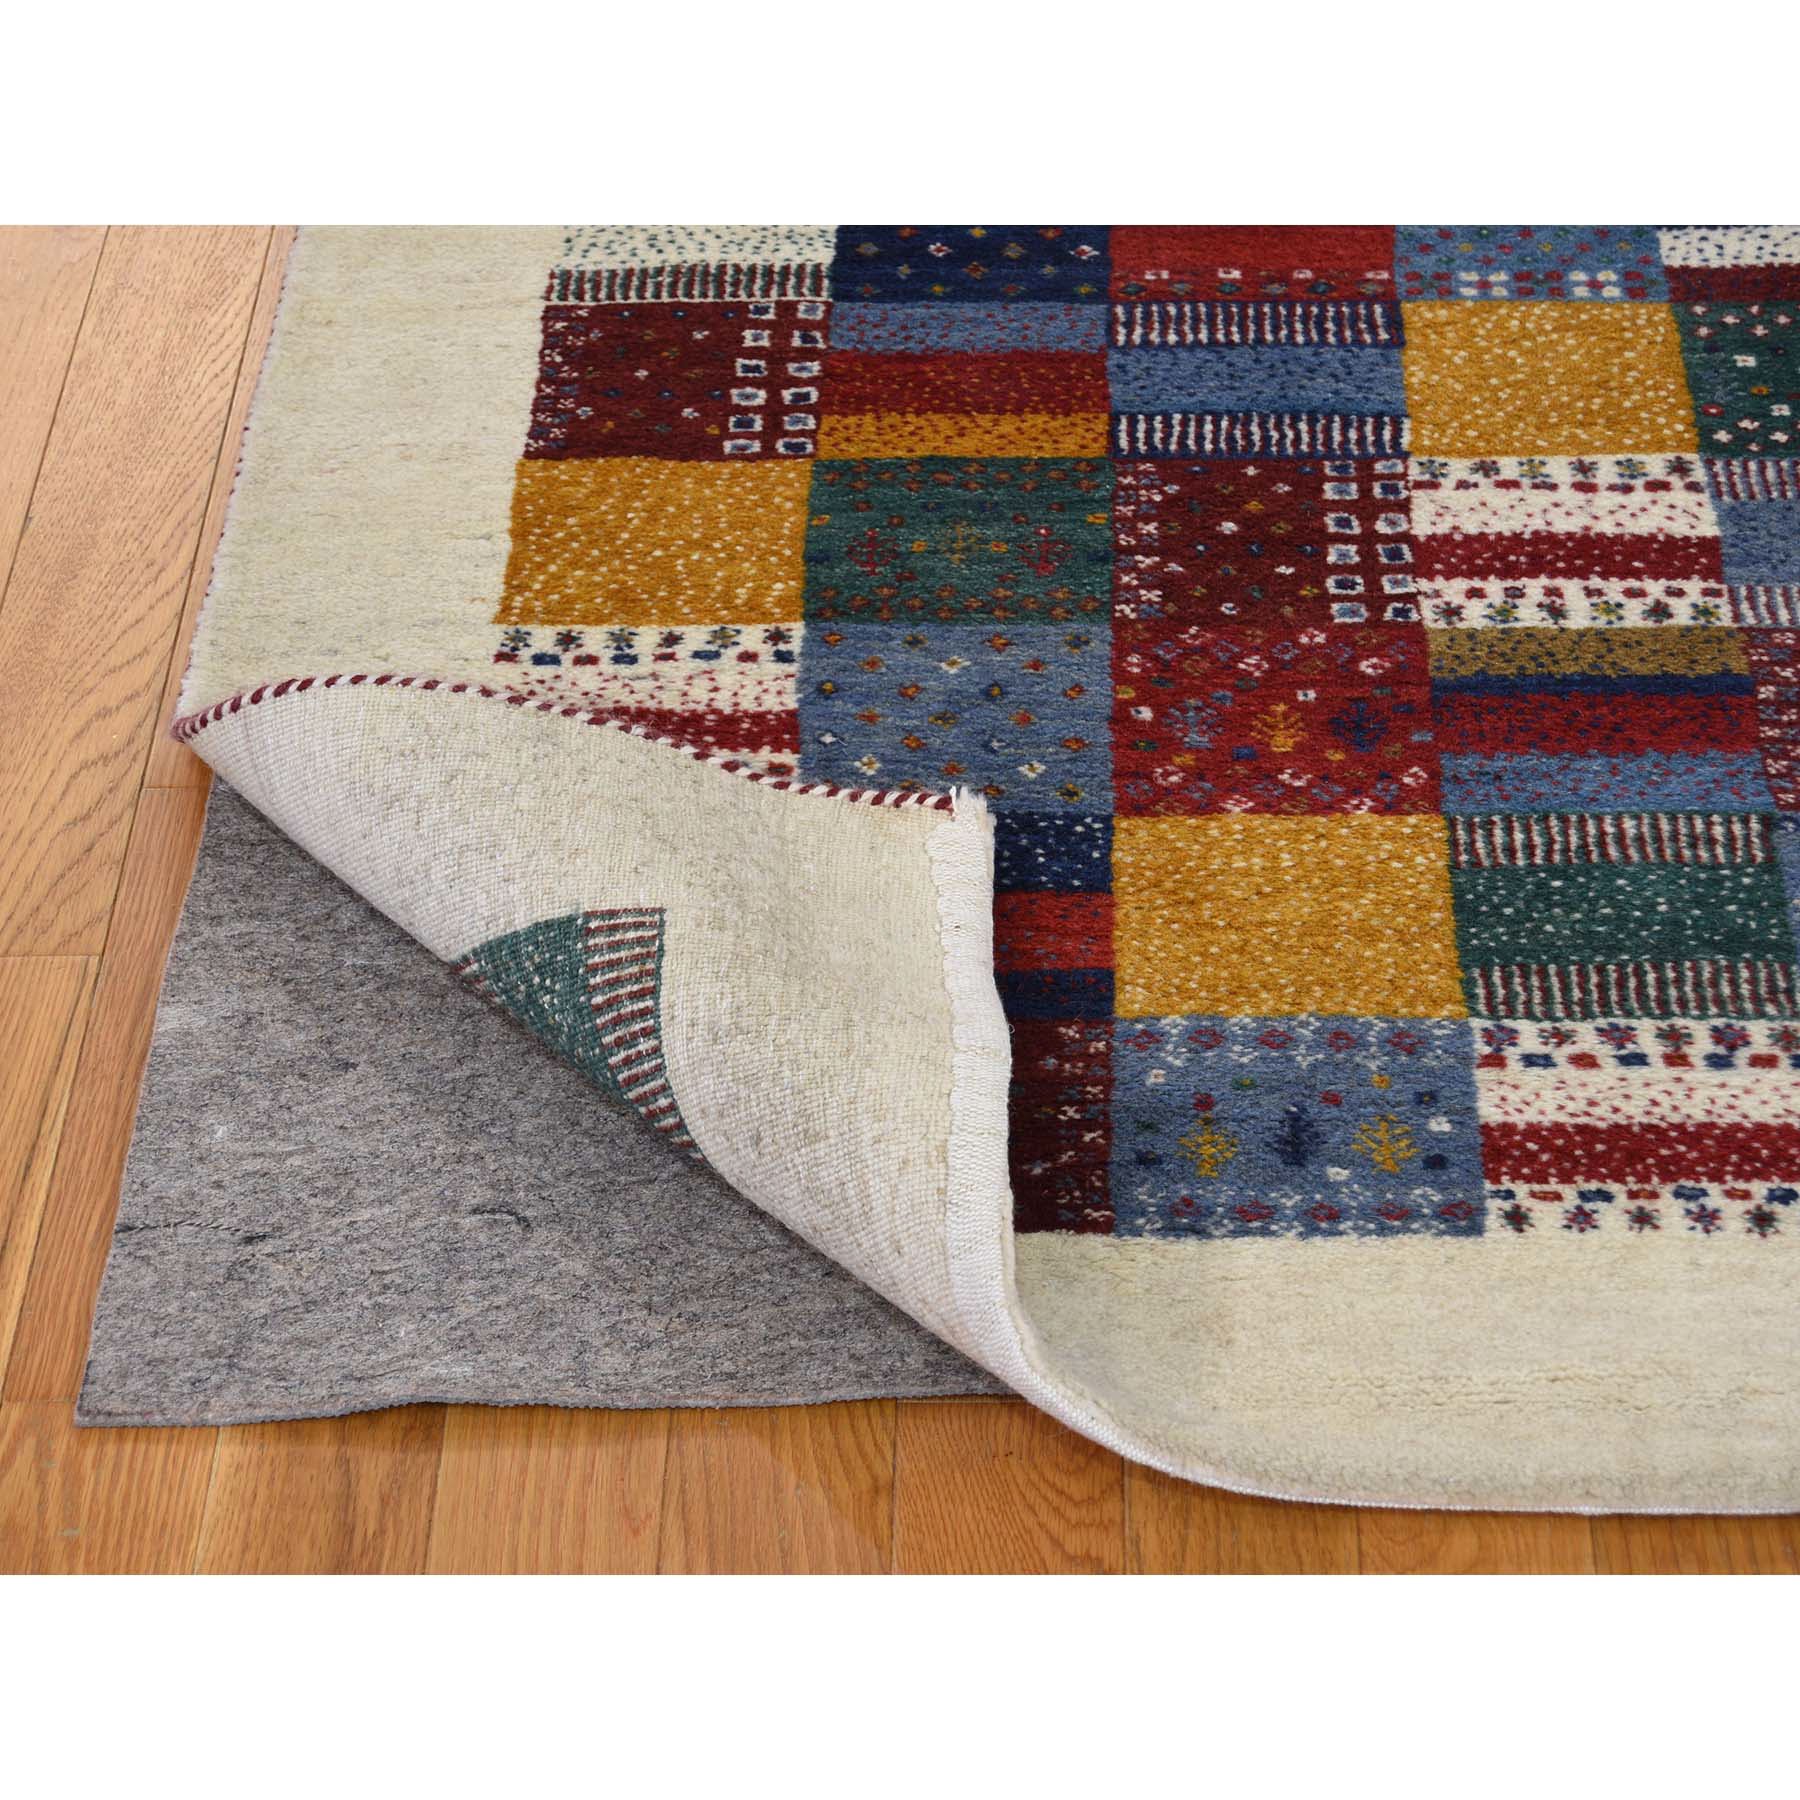 4'x6' Persian Wool Hand Knotted Lori Buft Gabbeh Patchwork Design Rug